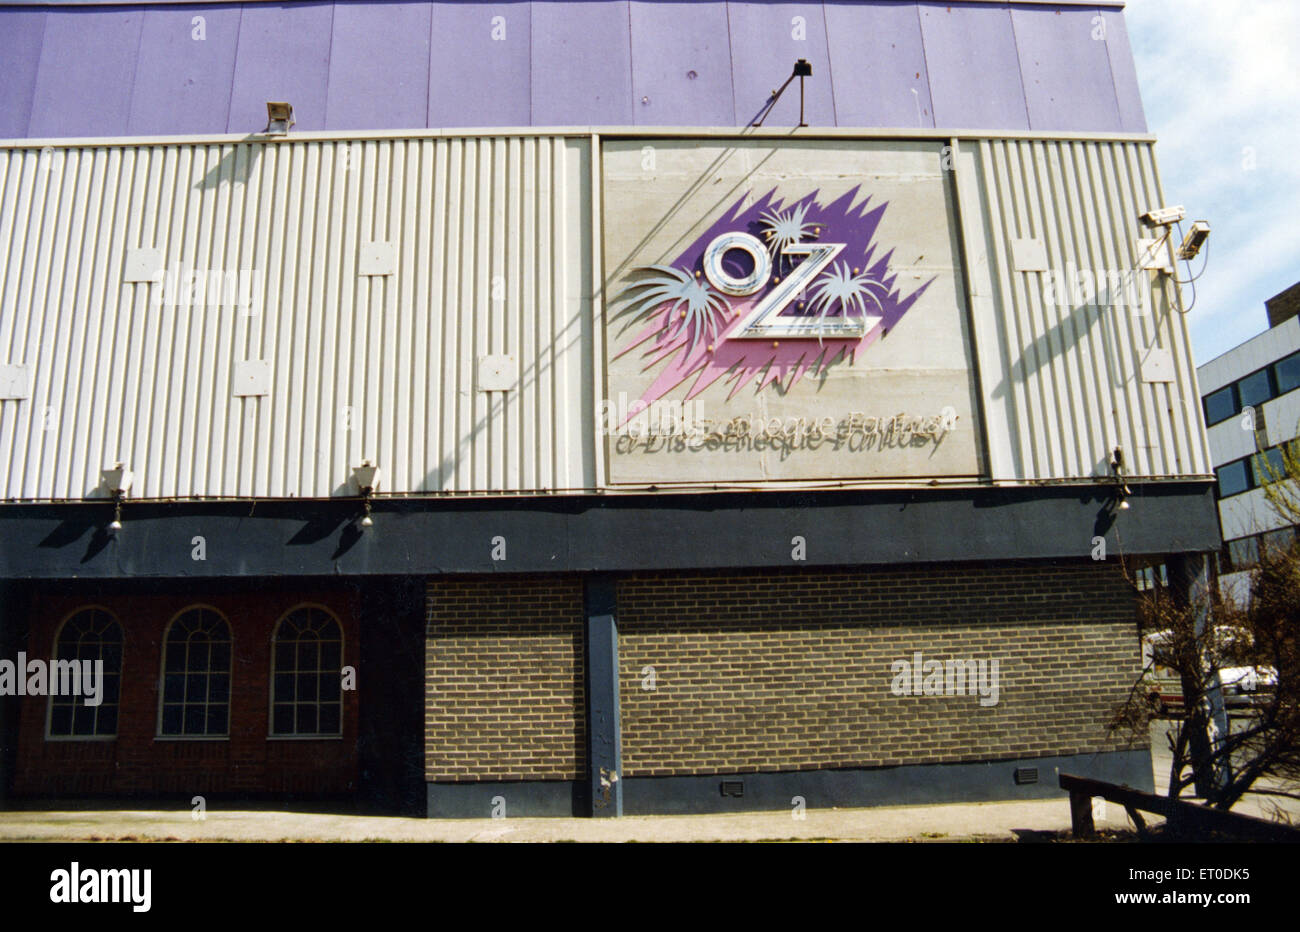 Oz nightclub in South Shields, Tyne and Wear. 9th June 1994. - Stock Image